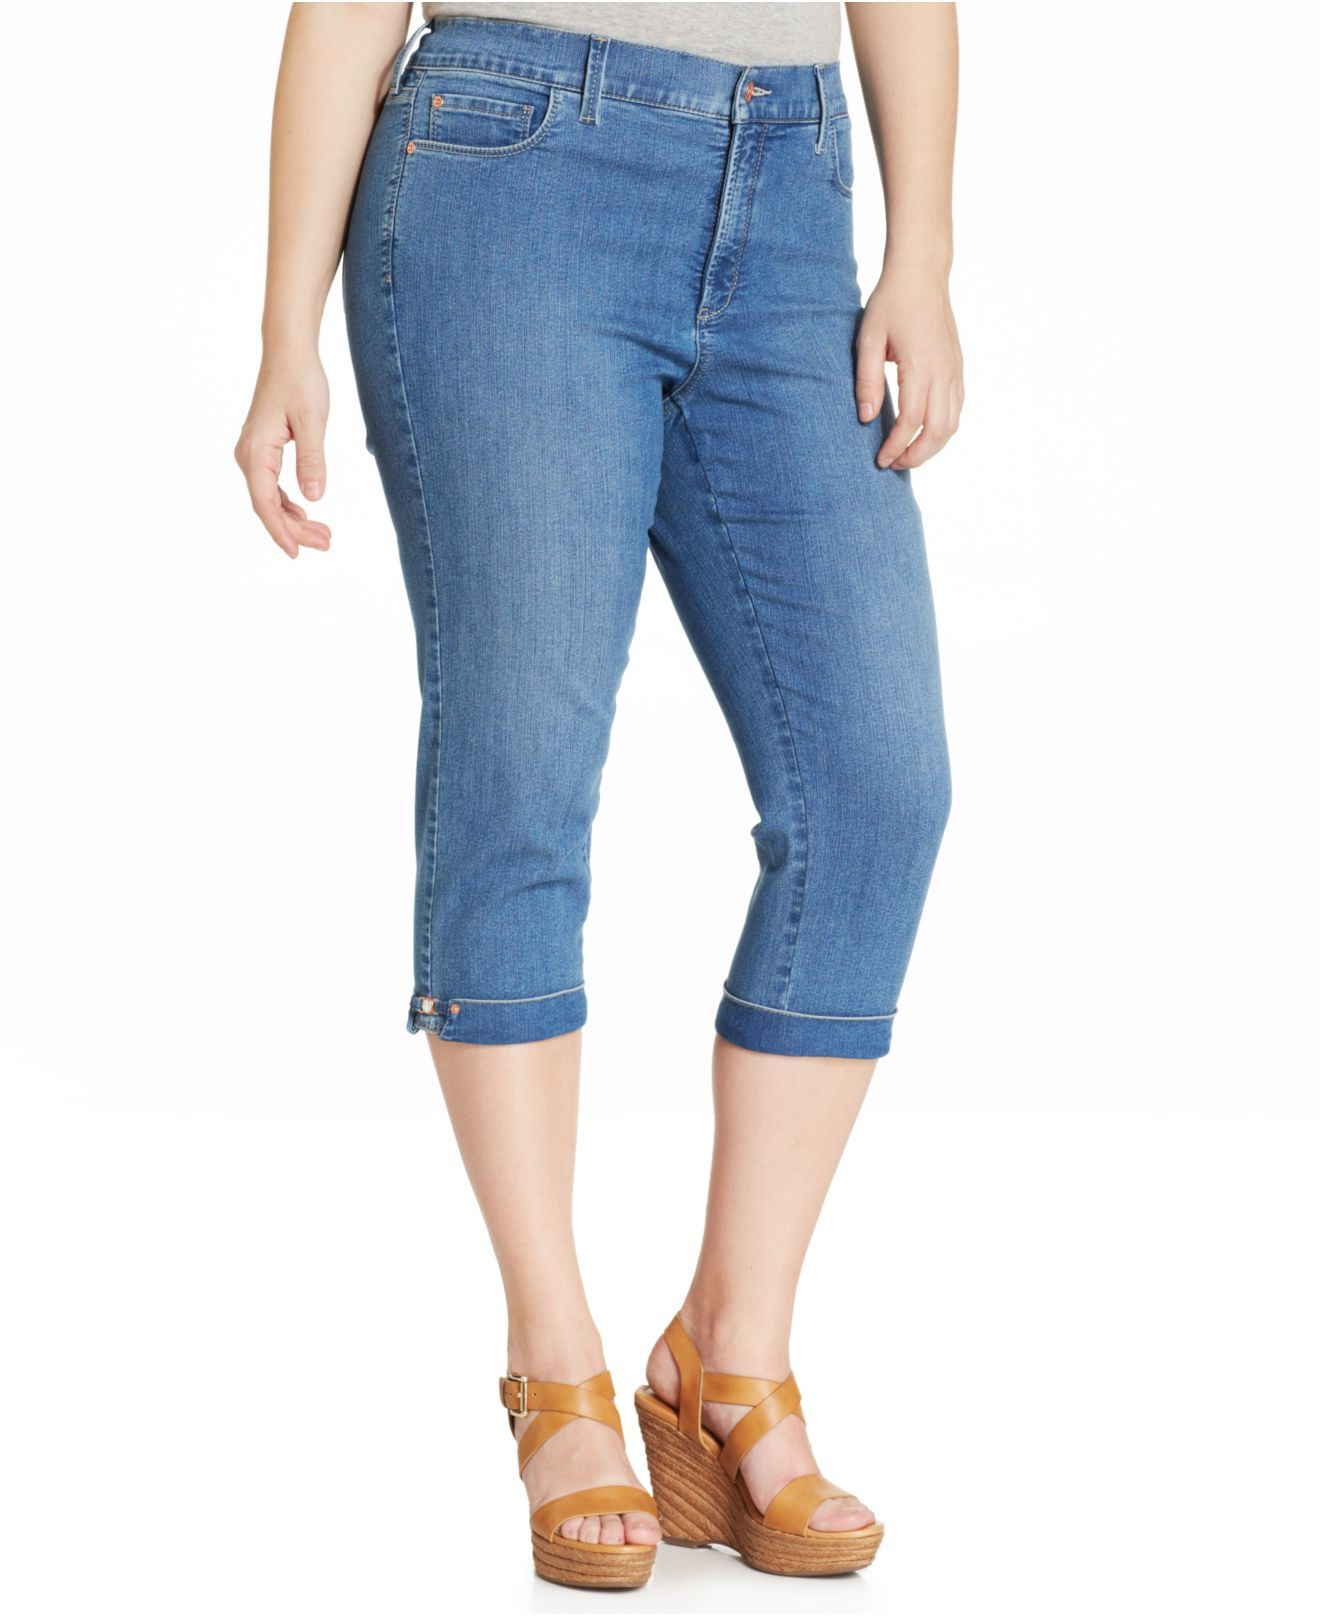 Nydj Plus Size Kasia Cuffed Cropped Jeans in Blue | Lyst